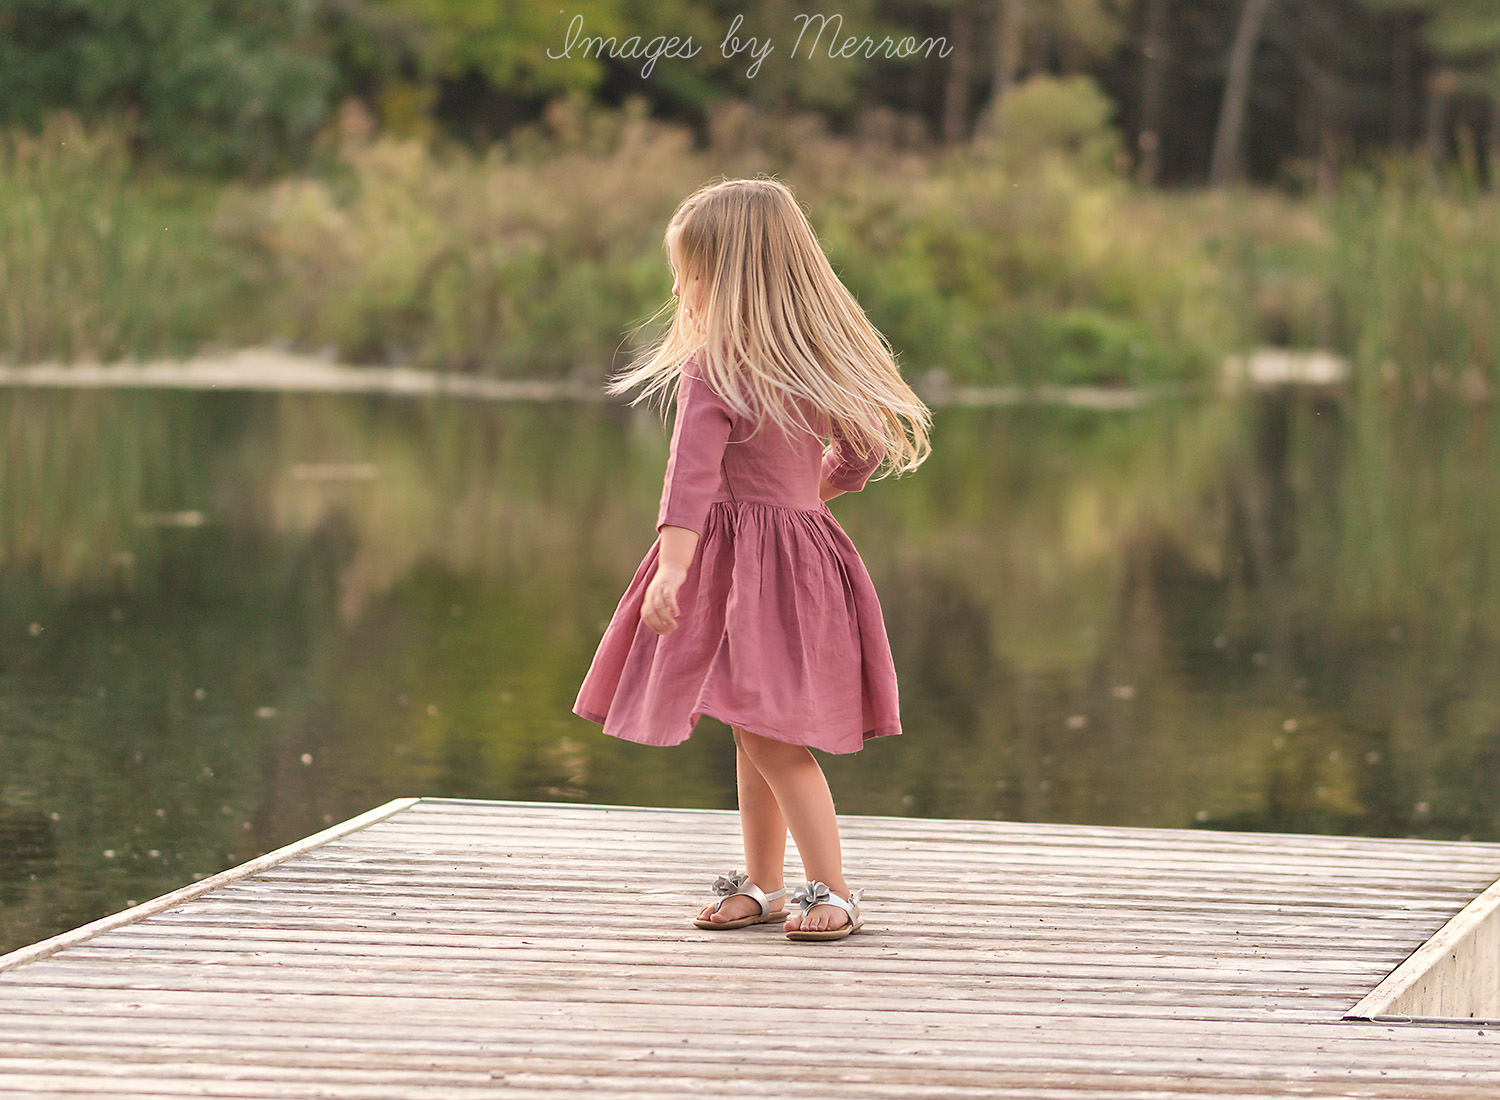 Girl twirling hair on dock at Jester Park in Iowa